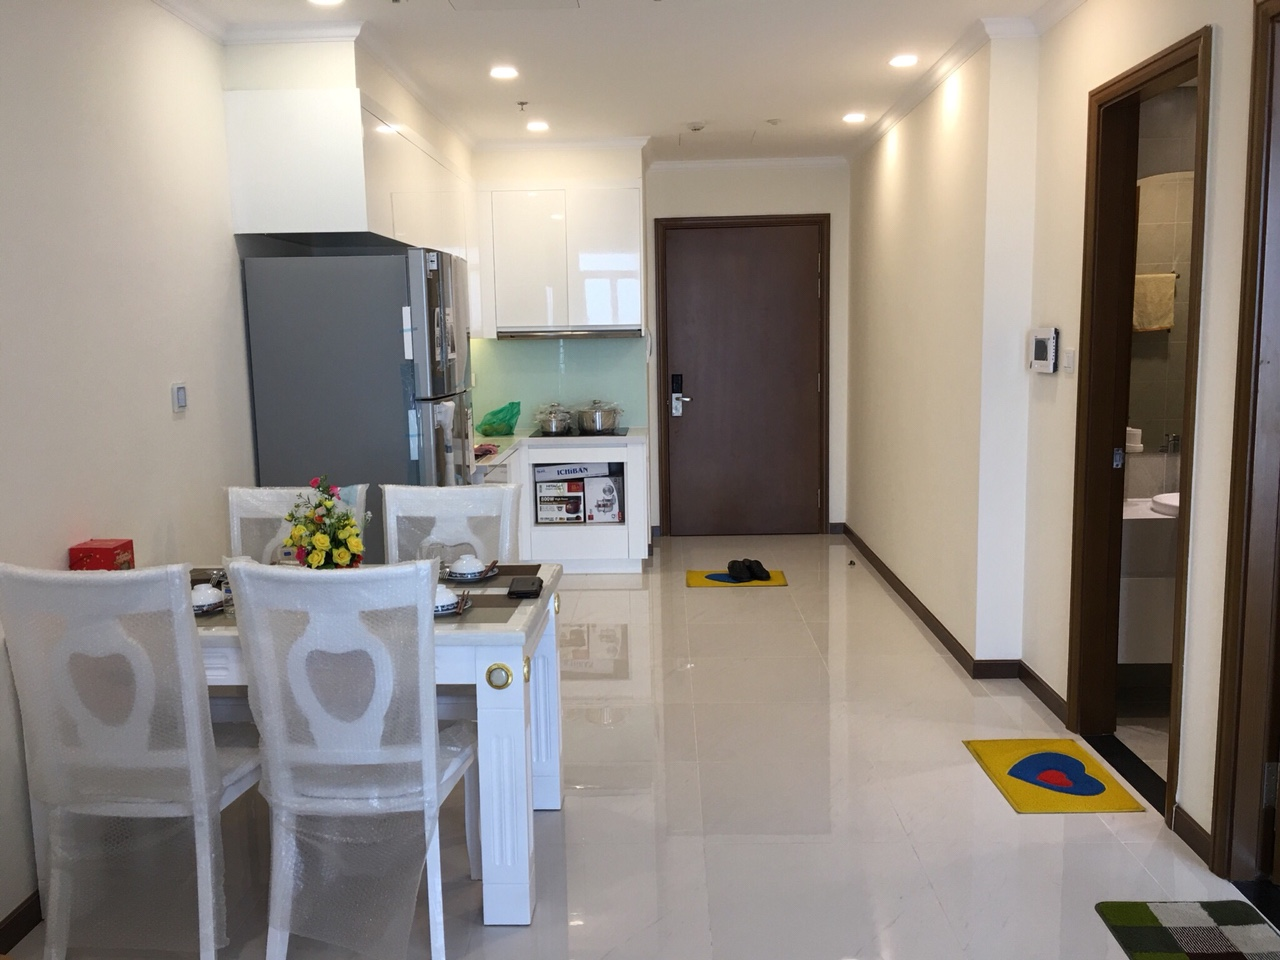 apartment for rent in HCMC BT106L1991 Vu (1)